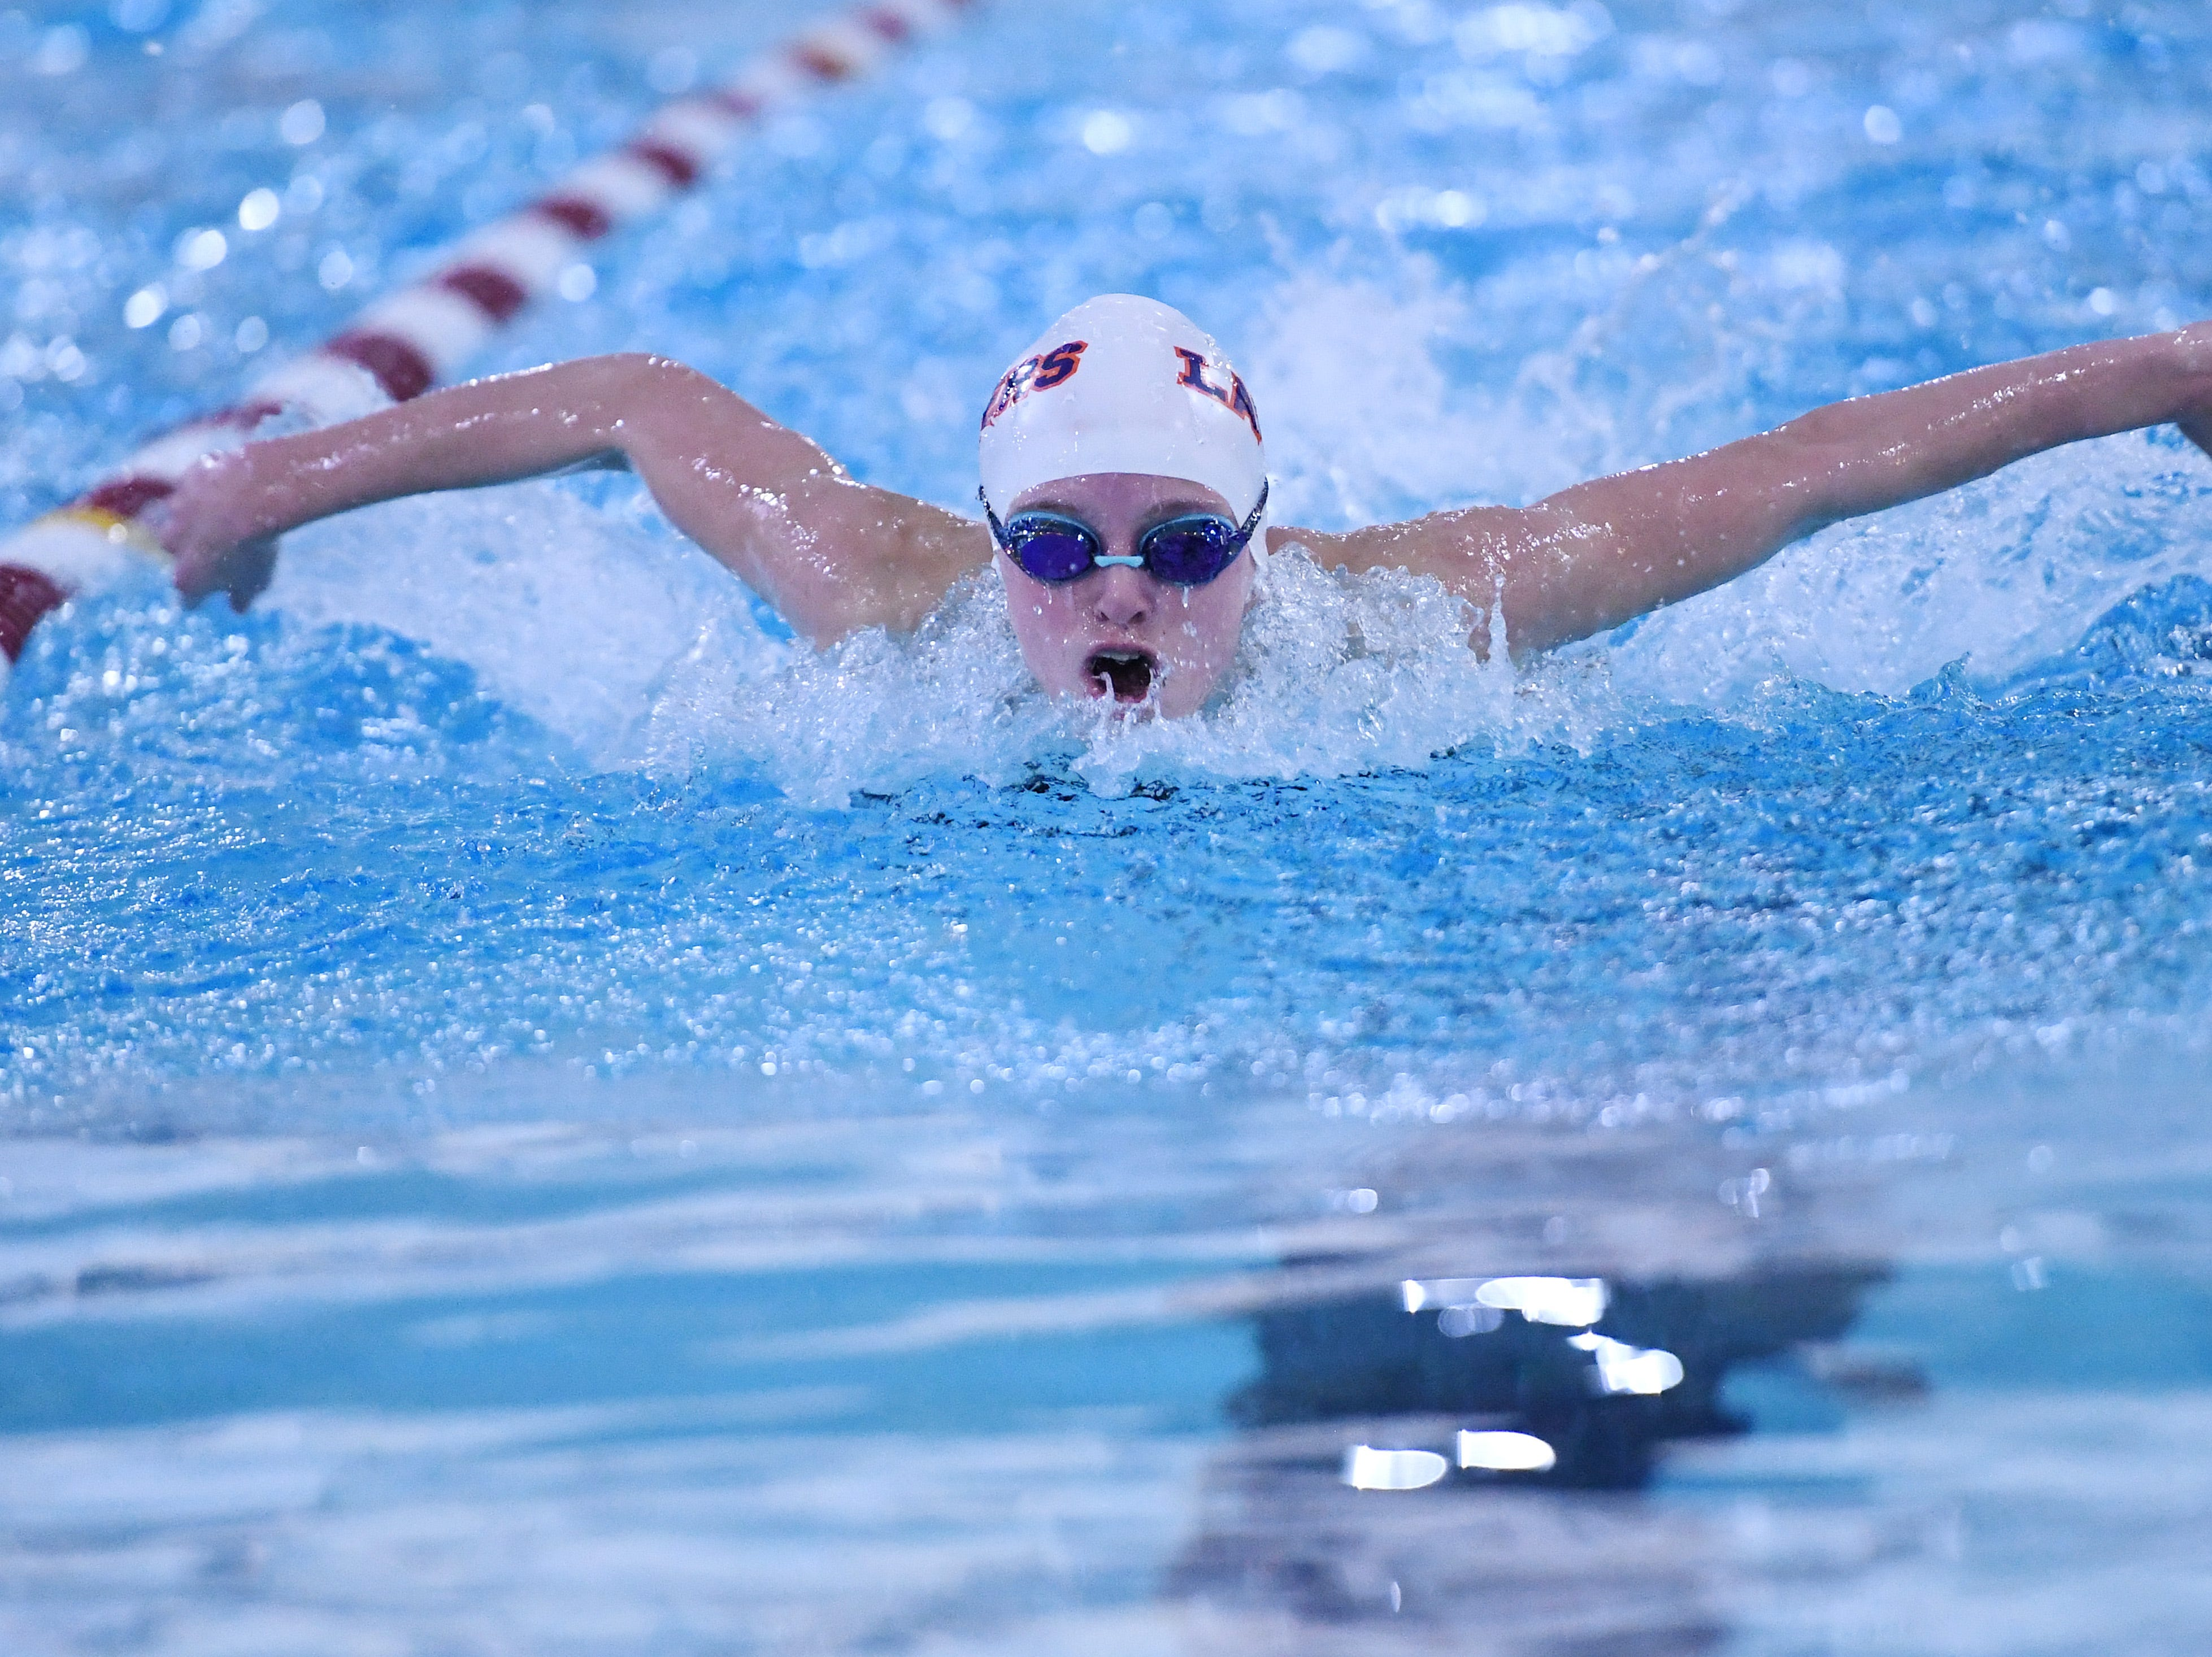 Morris County Swimming Championships at Morristown High School on Saturday, January 26, 2019. Lily Hann of Mountain Lakes in the Girls 100 SC Meter Butterfly.